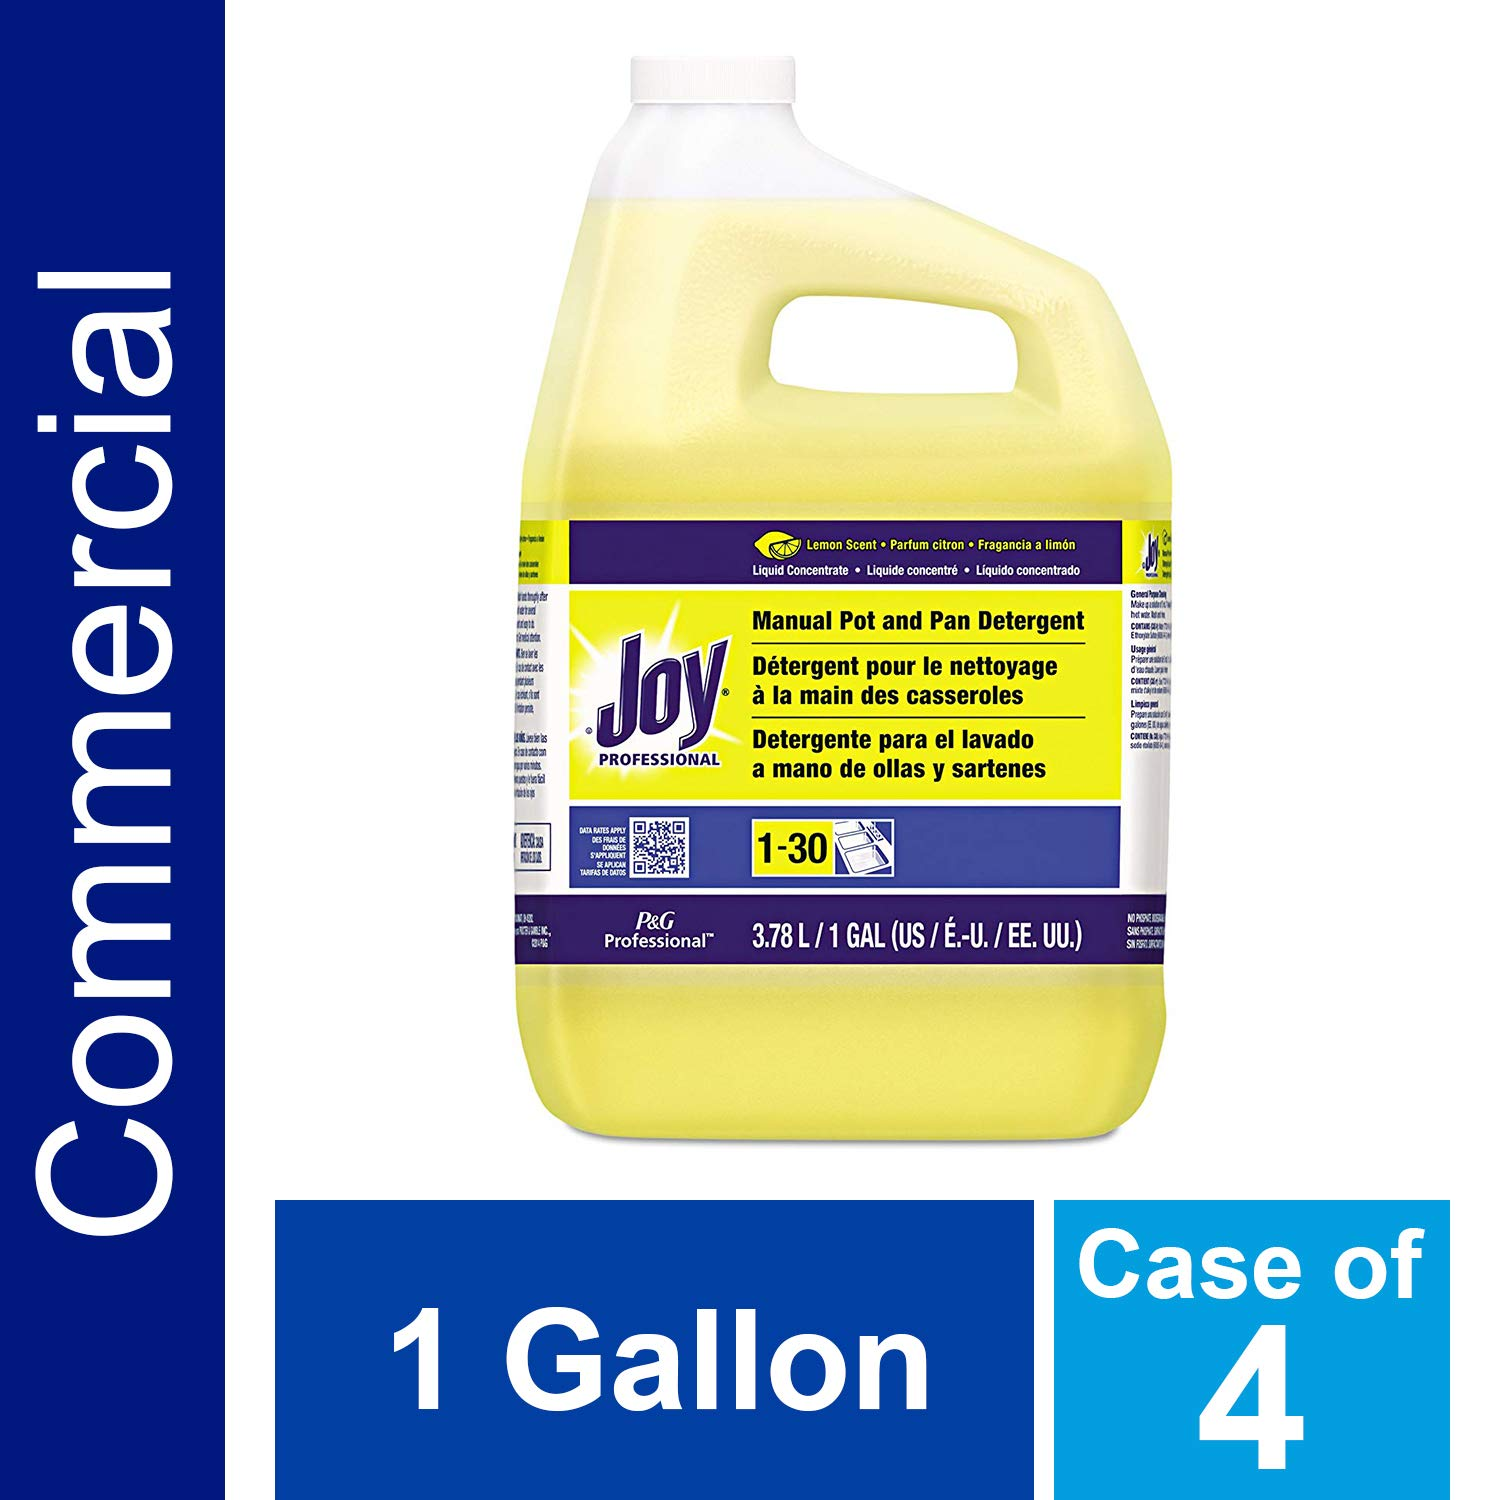 Dishwashing Liquid Soap Detergent by Joy Professional, Bulk Degreaser Removes Greasy Foods from Pots, Pans and Dishes in Commercial Restaurant Kitchens, Lemon Scent, 1 gal. (Case of 4) by P&G Professional